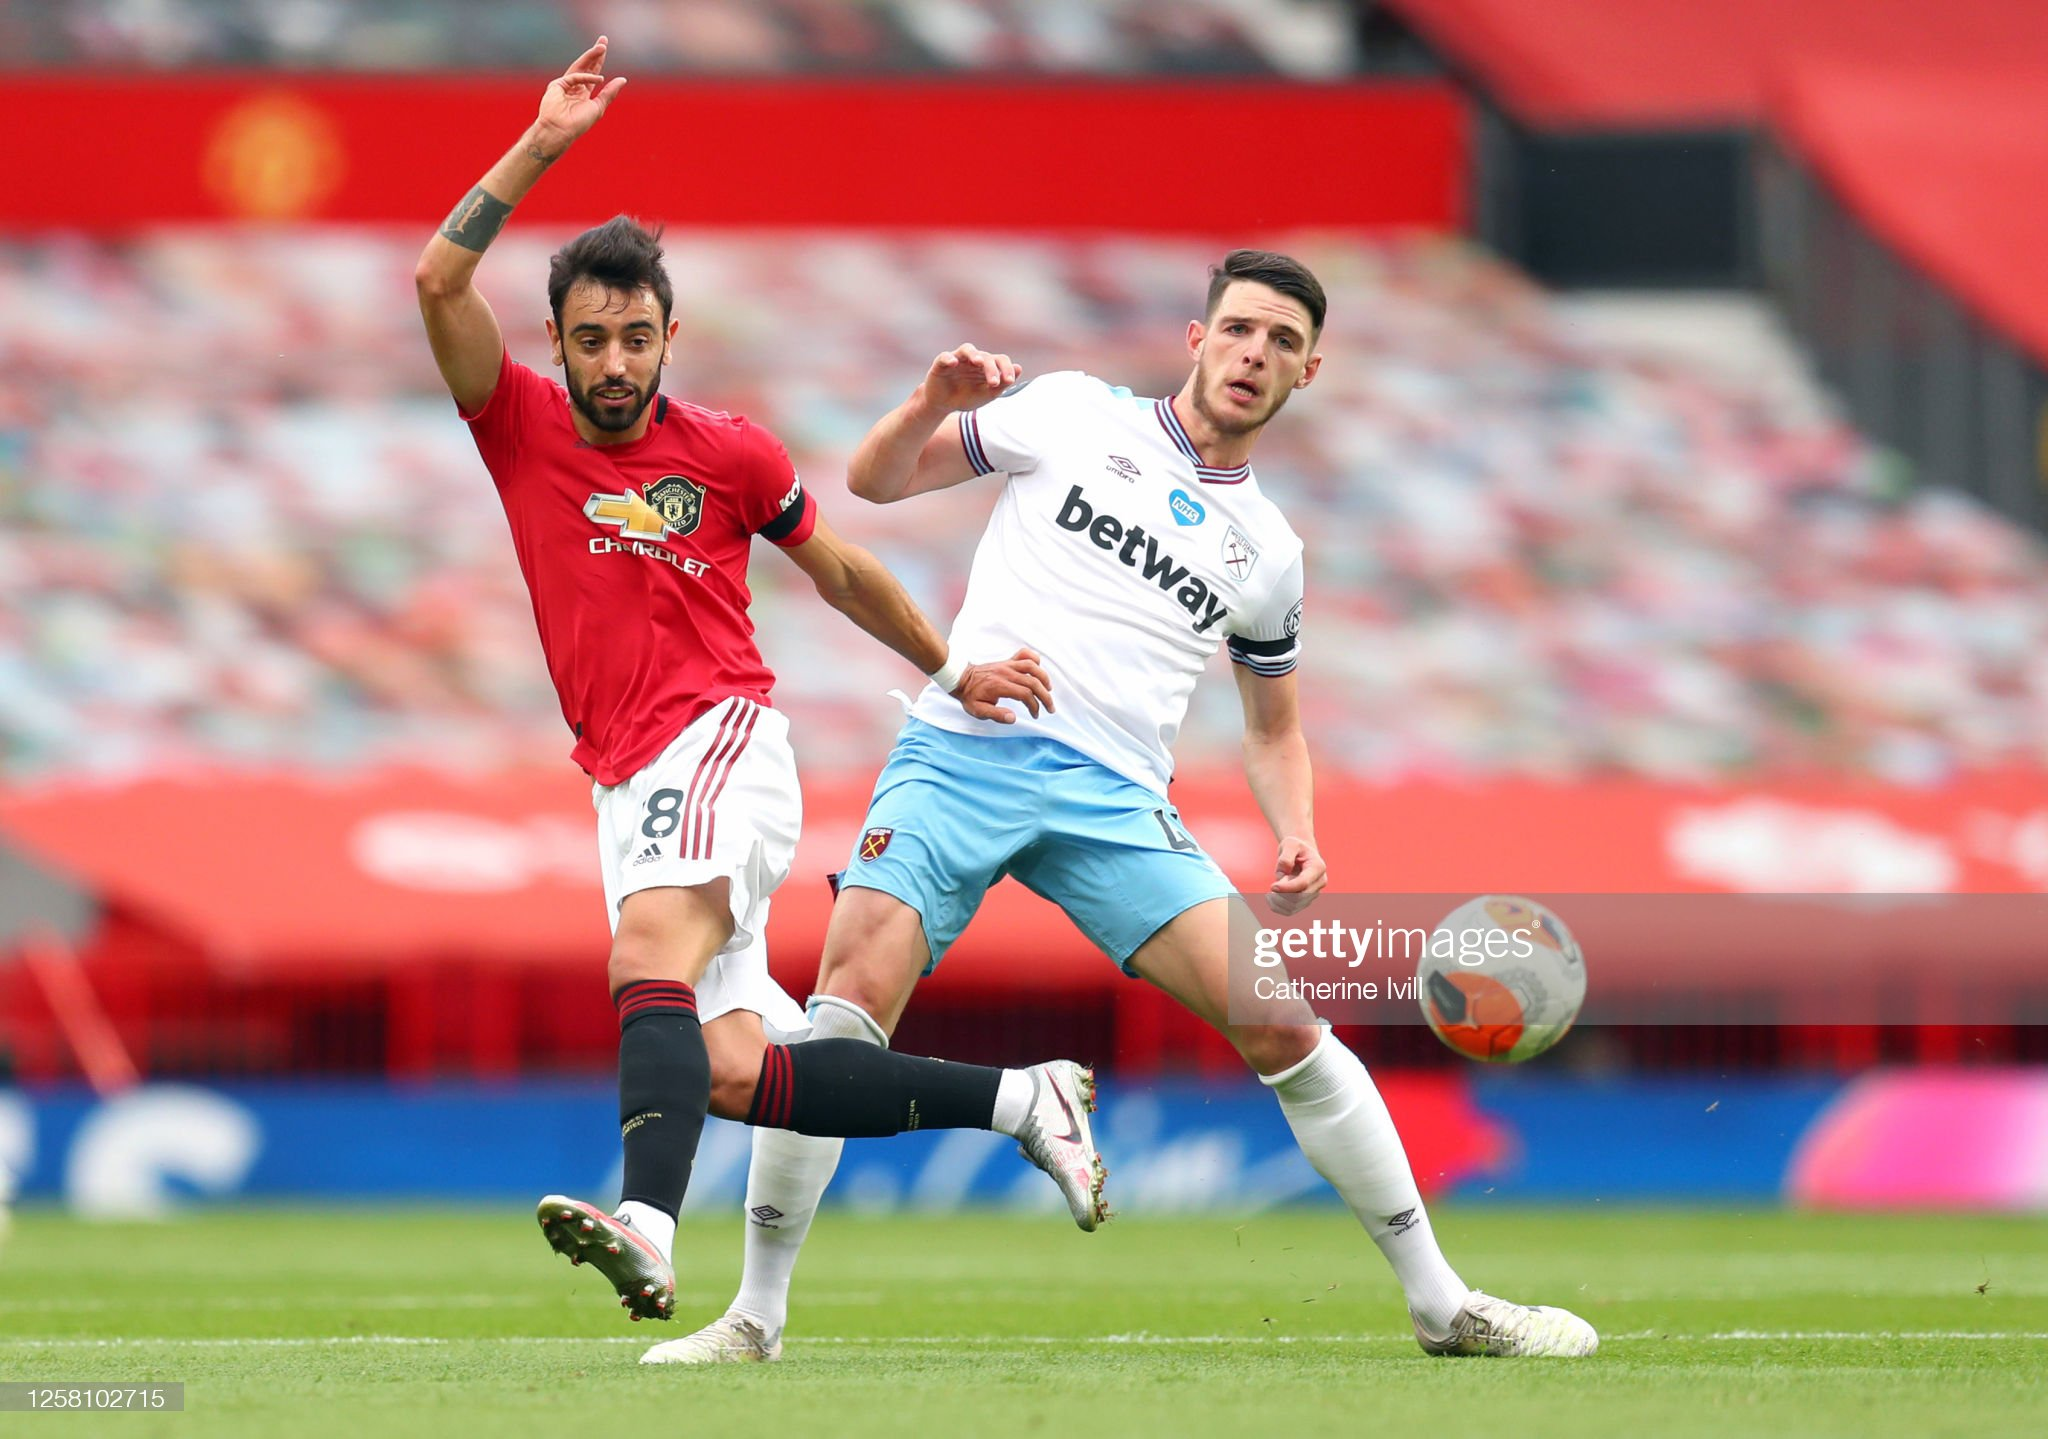 West Ham vs Manchester United Preview, prediction and odds